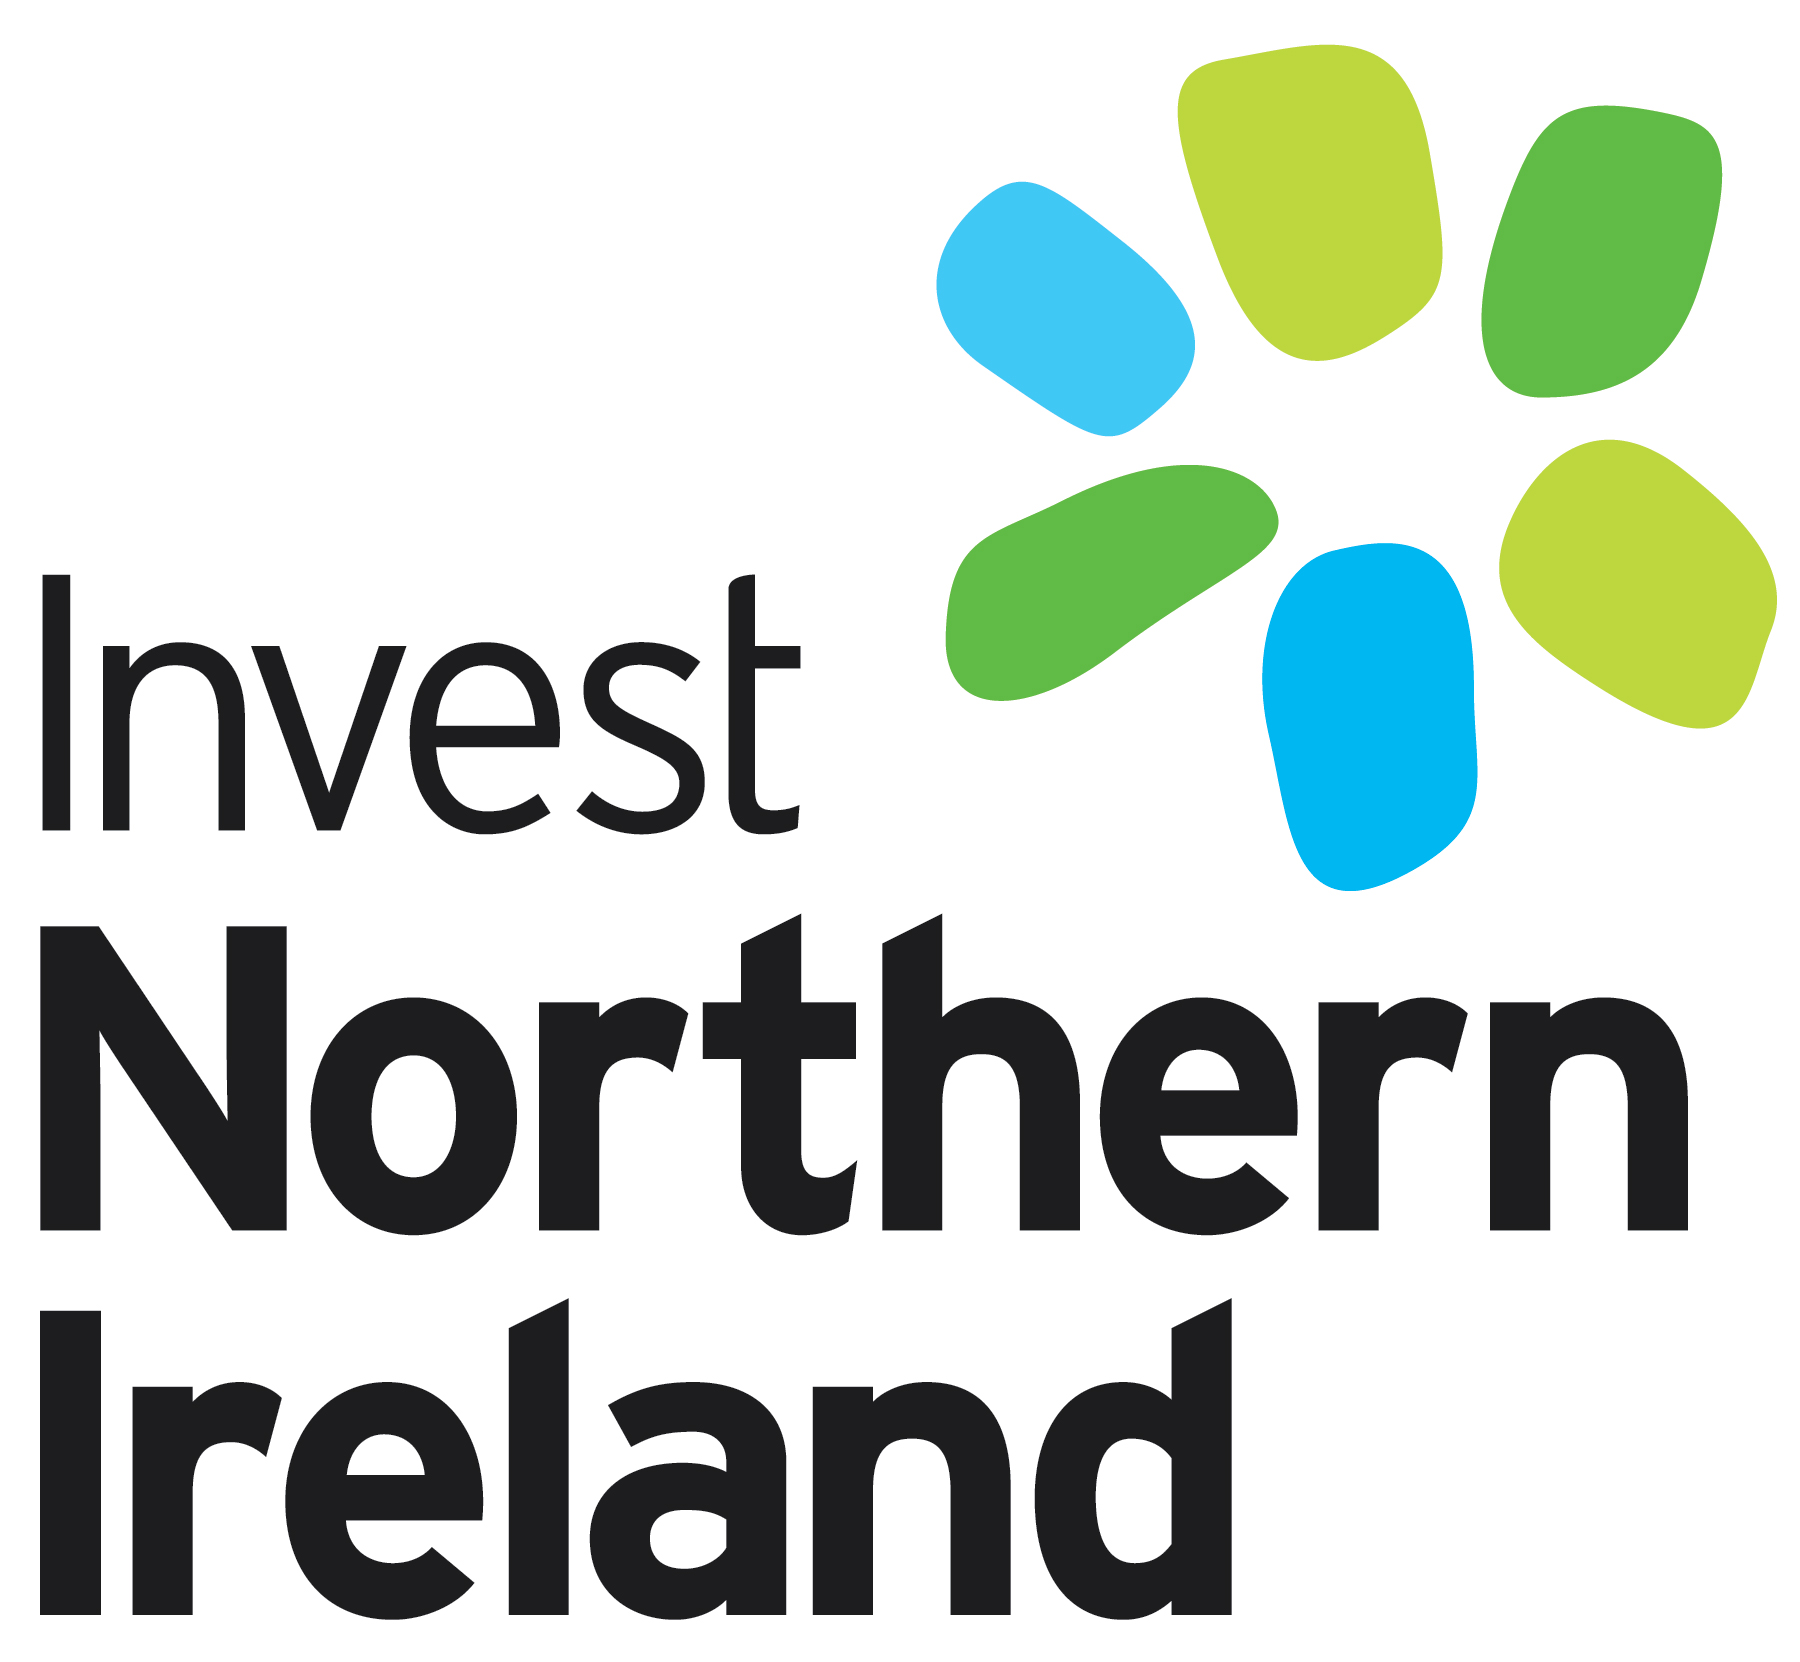 Invest_Northern_Ireland_-_logo.jpg